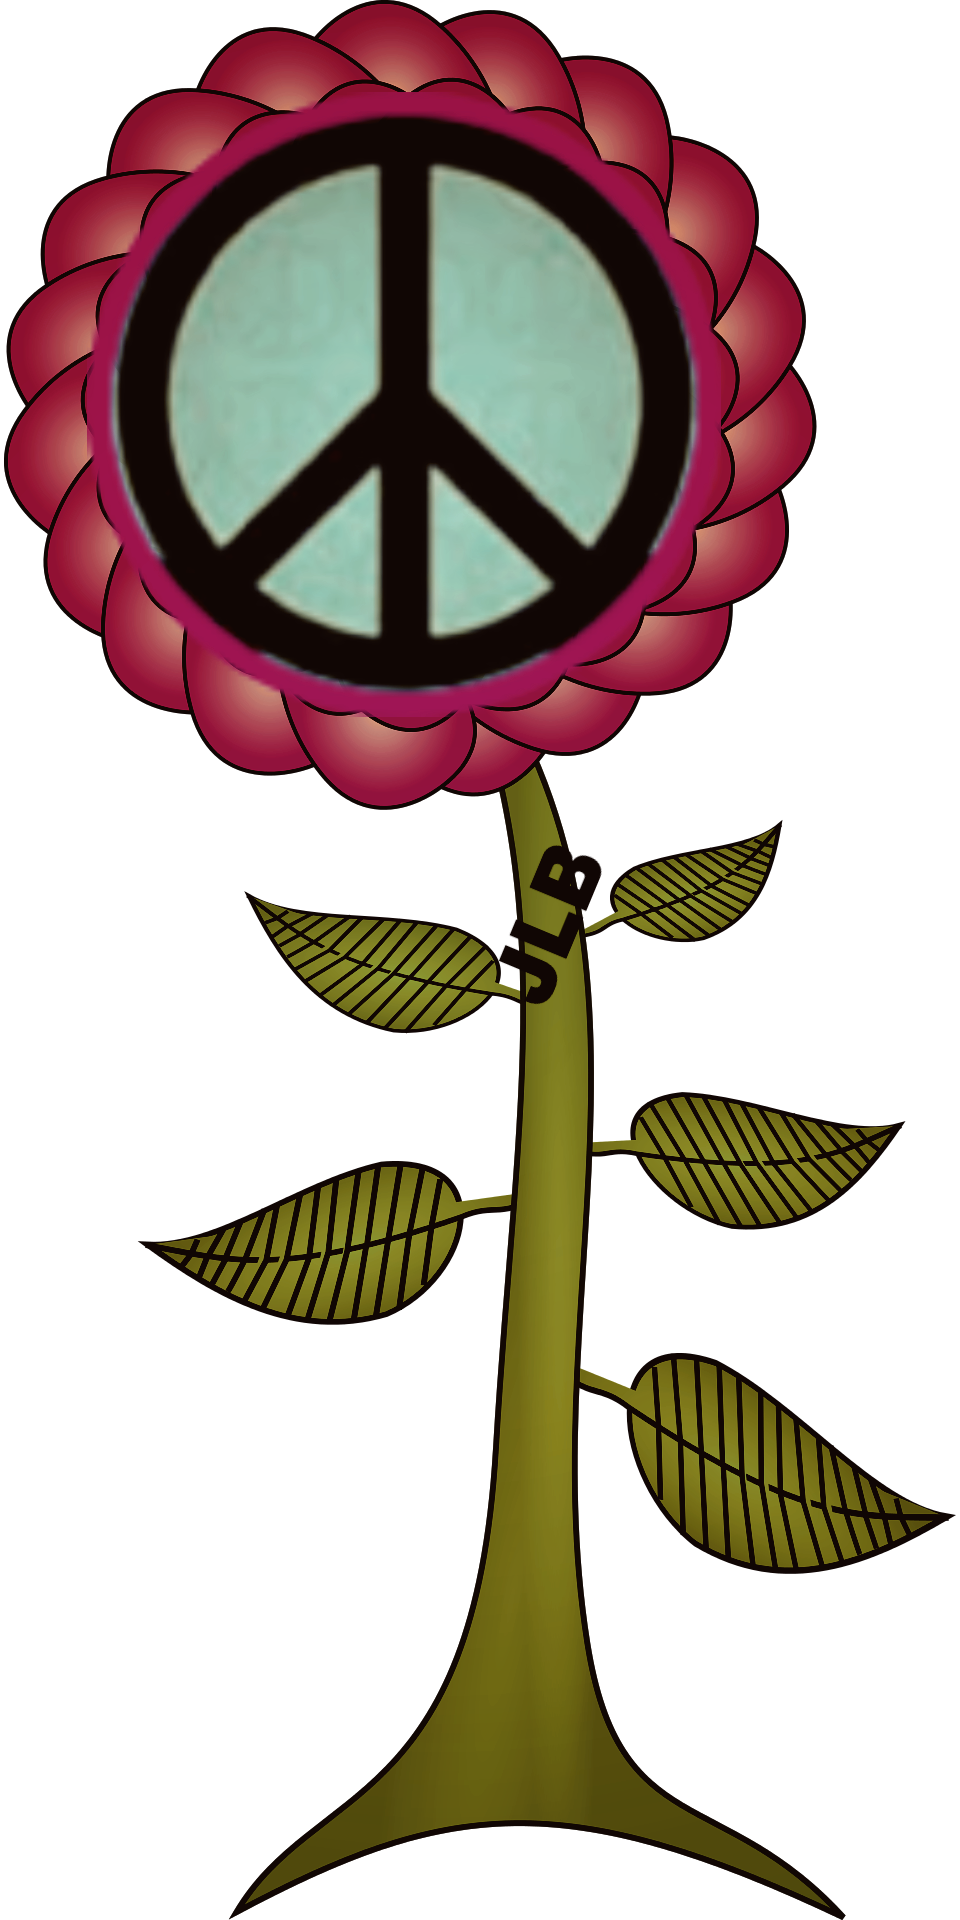 Pin by jessie on. Hippie clipart feeling groovy